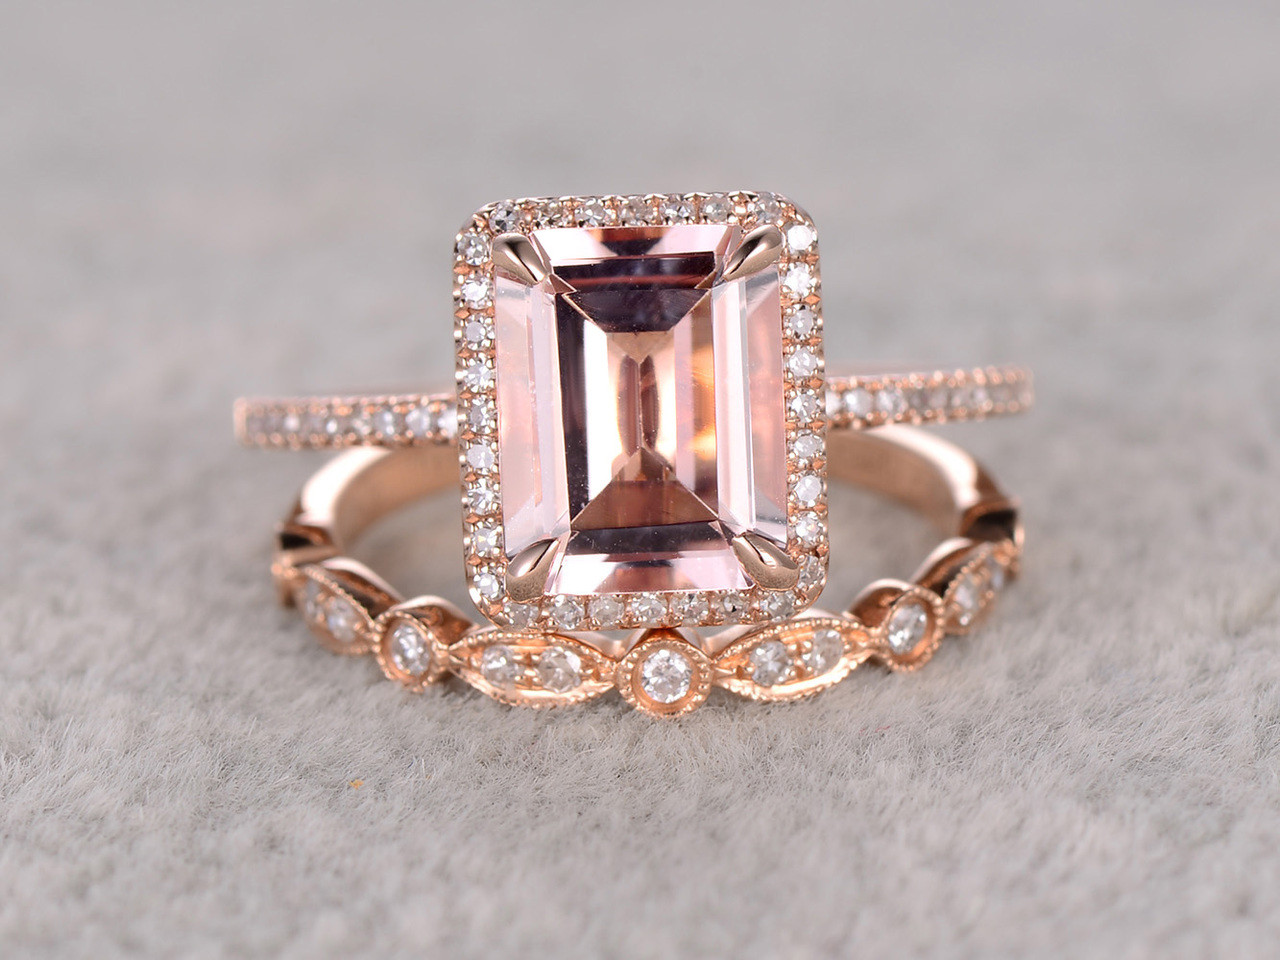 2.5 To 3 Carat Emerald Cut Morganite Engagement Ring Set Diamond Bridal Ring  14k Rose Gold